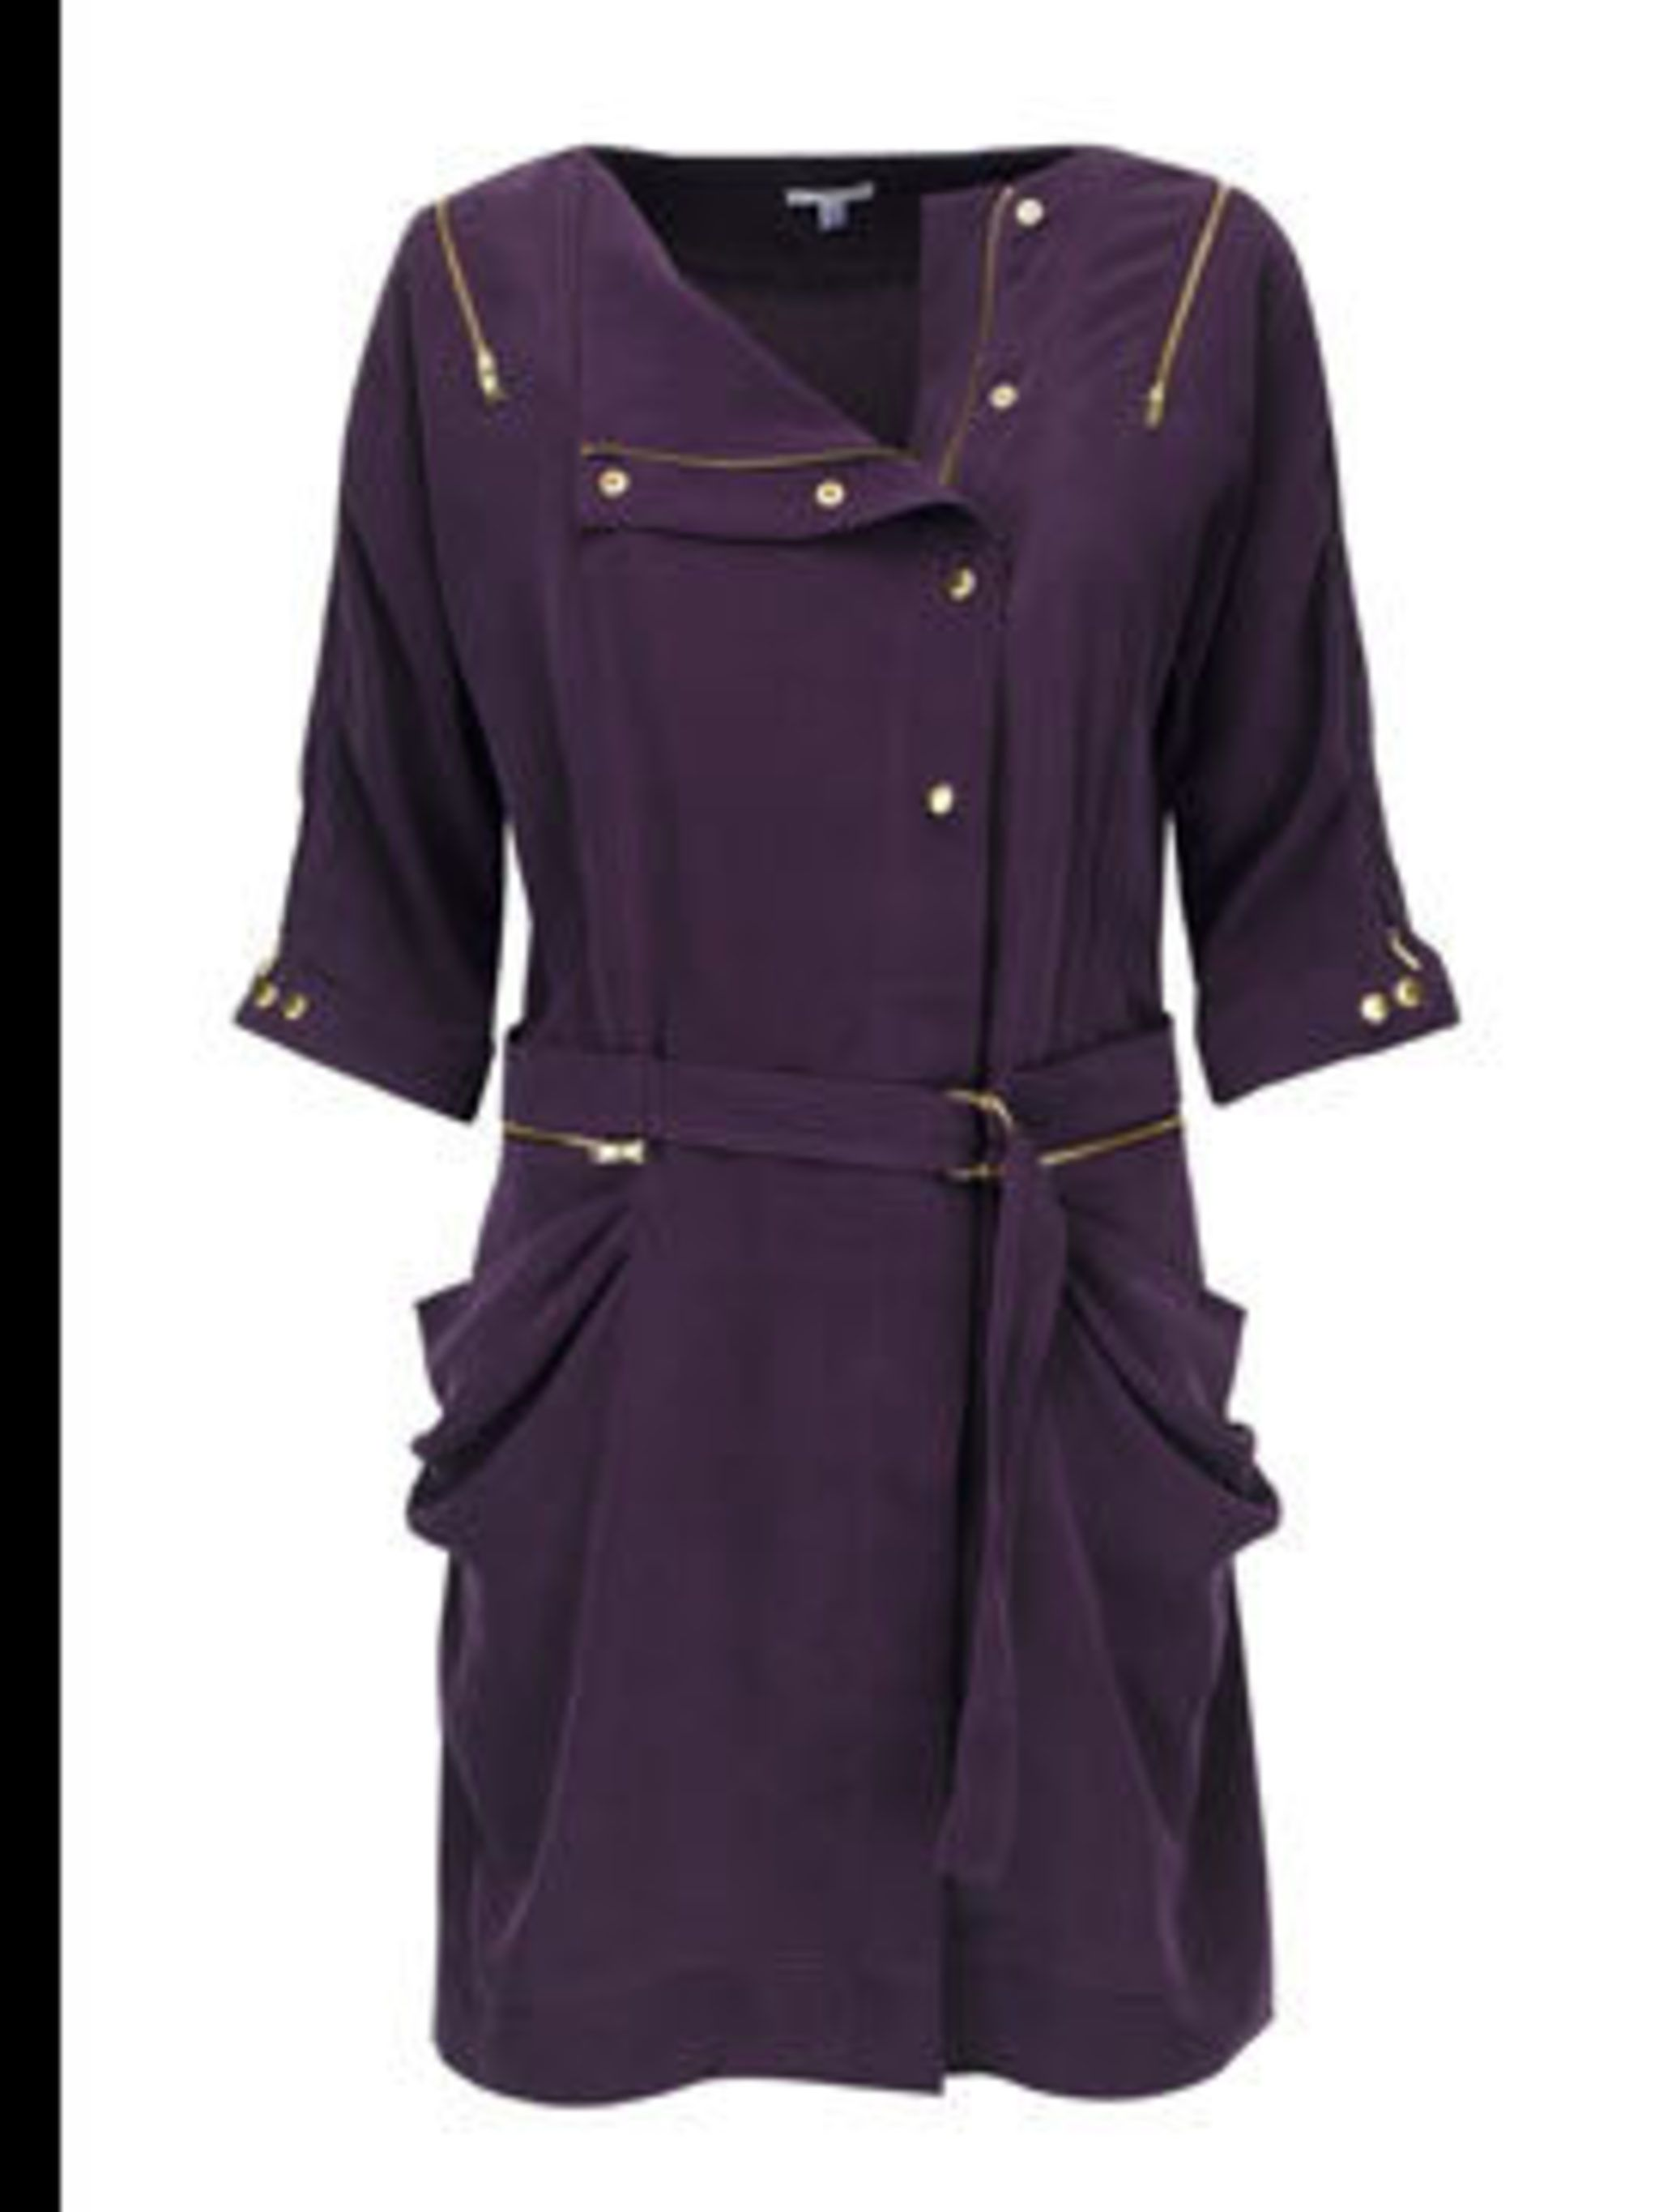 """<p>Dress, £59 by Limited Collection at <a href=""""http://www.marksandspencer.com/gp/node/n/43019030/276-9844037-0594303"""">Marks & Spencer</a></p>"""